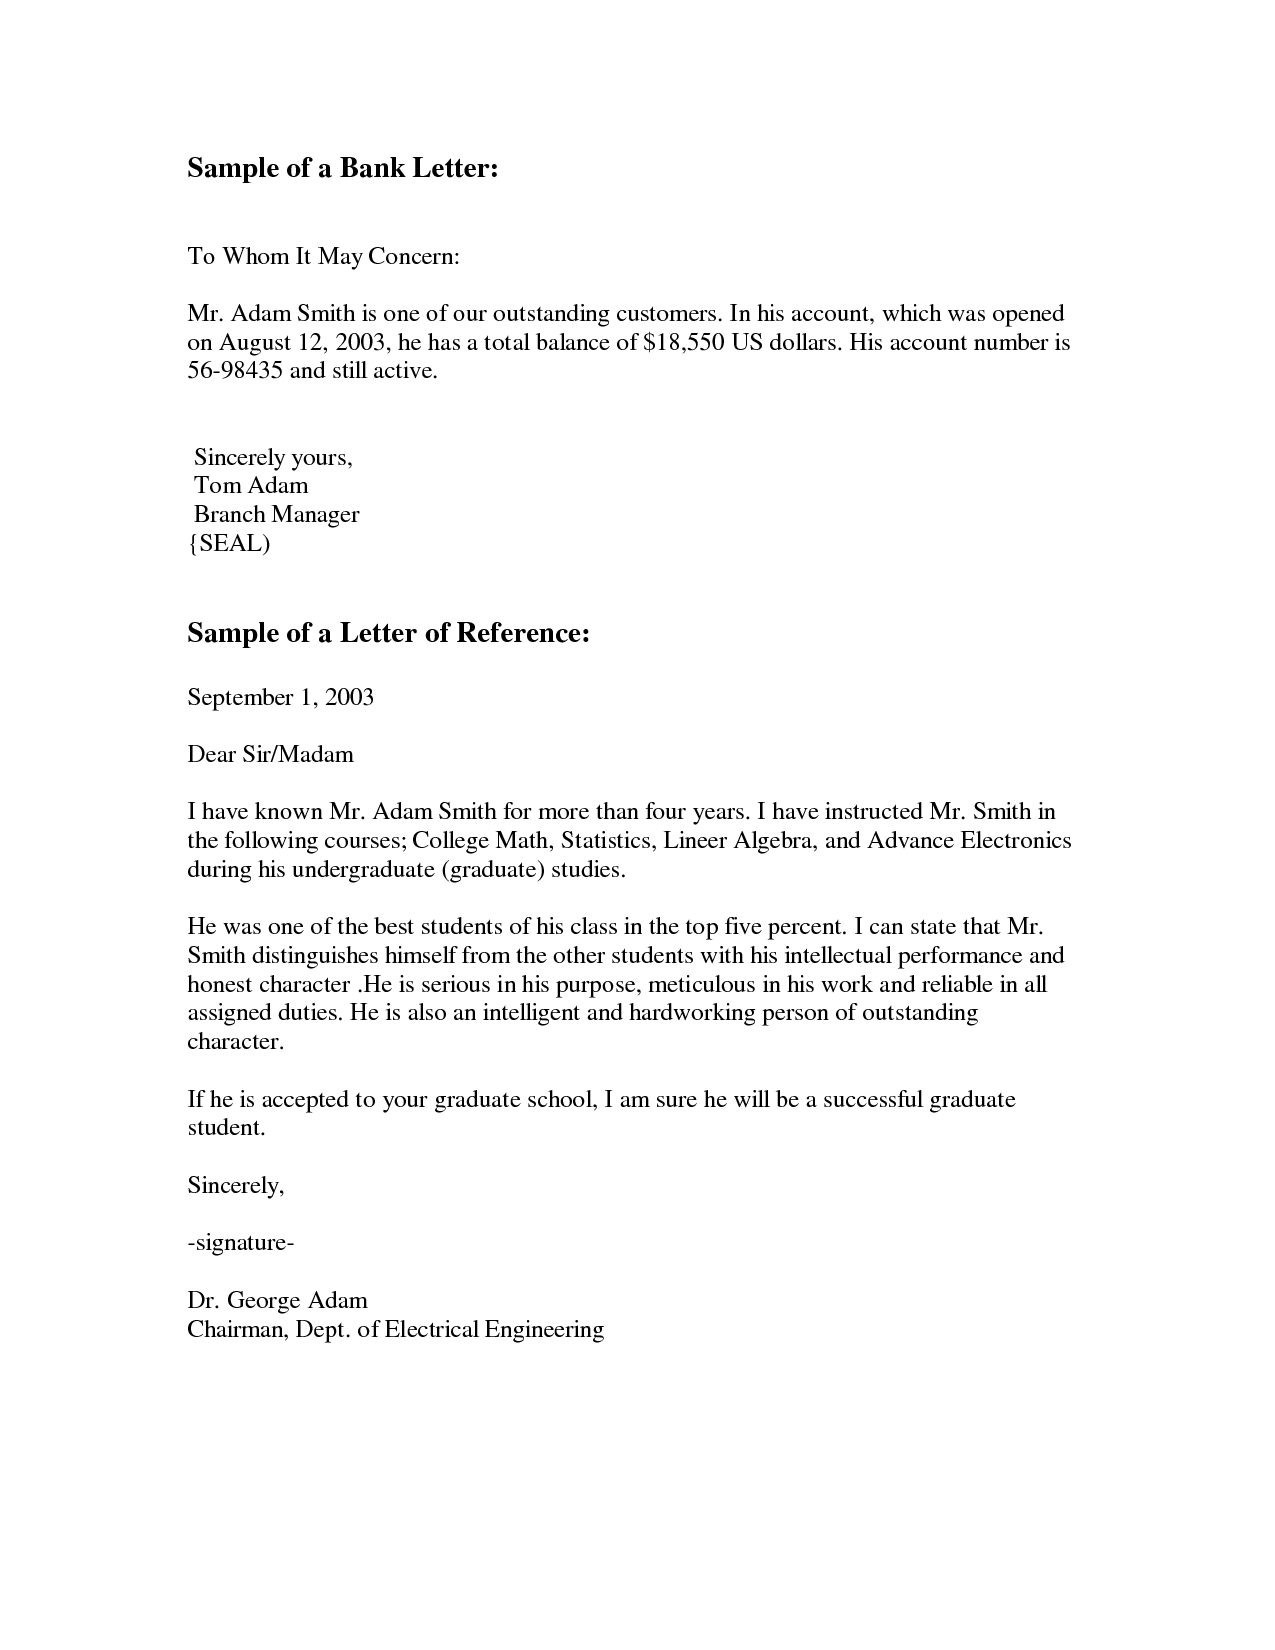 Letter Of Recommendation Letter Template Samples | Letter Templates